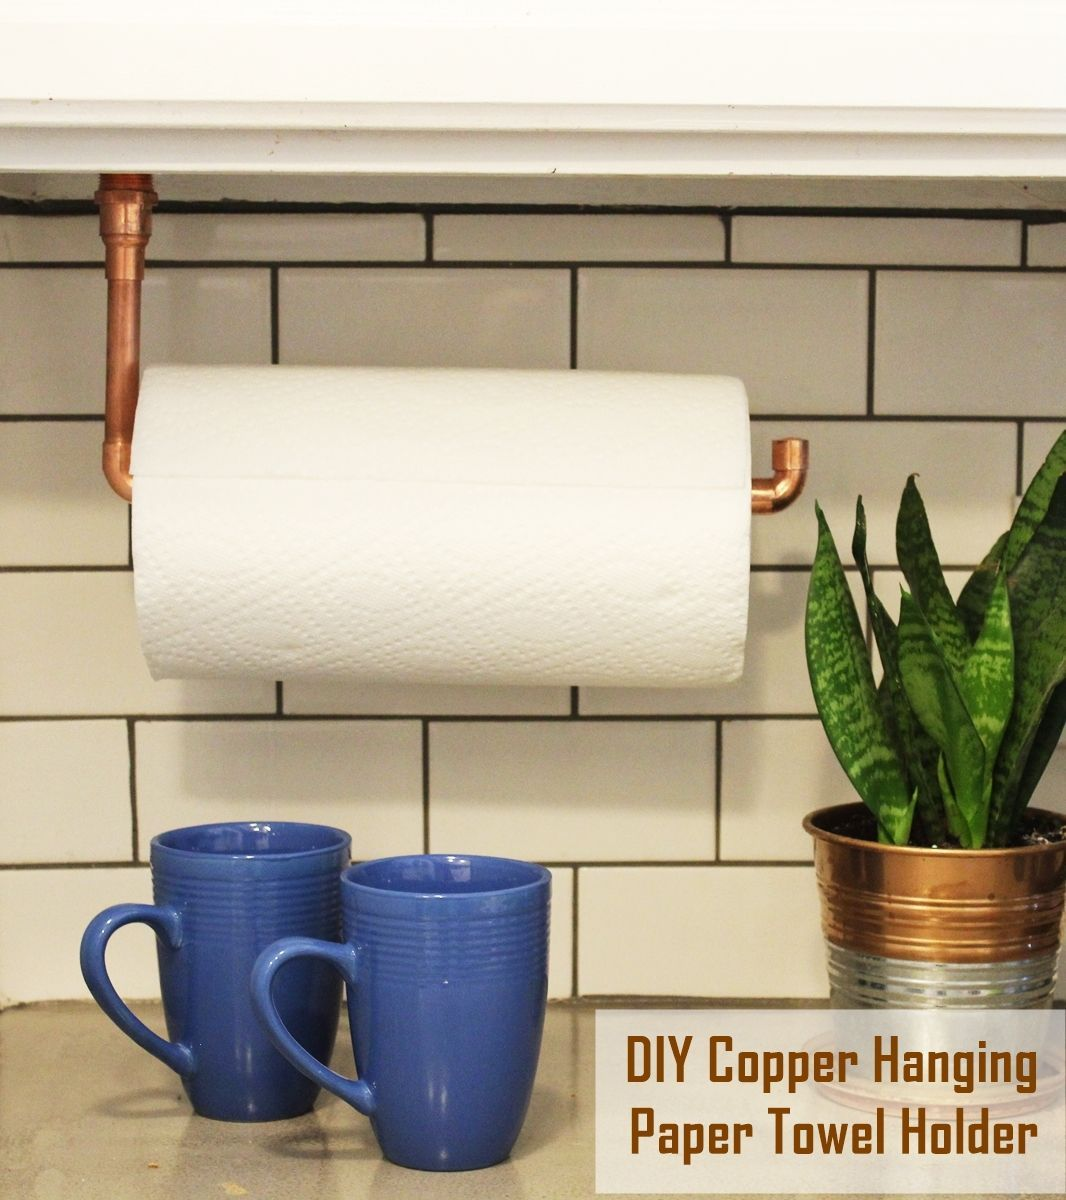 Antique Diy Under Cabinet Hanging Copper Paper Towel Her Under Cabinet  Paper Towel Her Brushed Nickel. Fullsize Of Under Cabinet Paper Towel Holder  ...